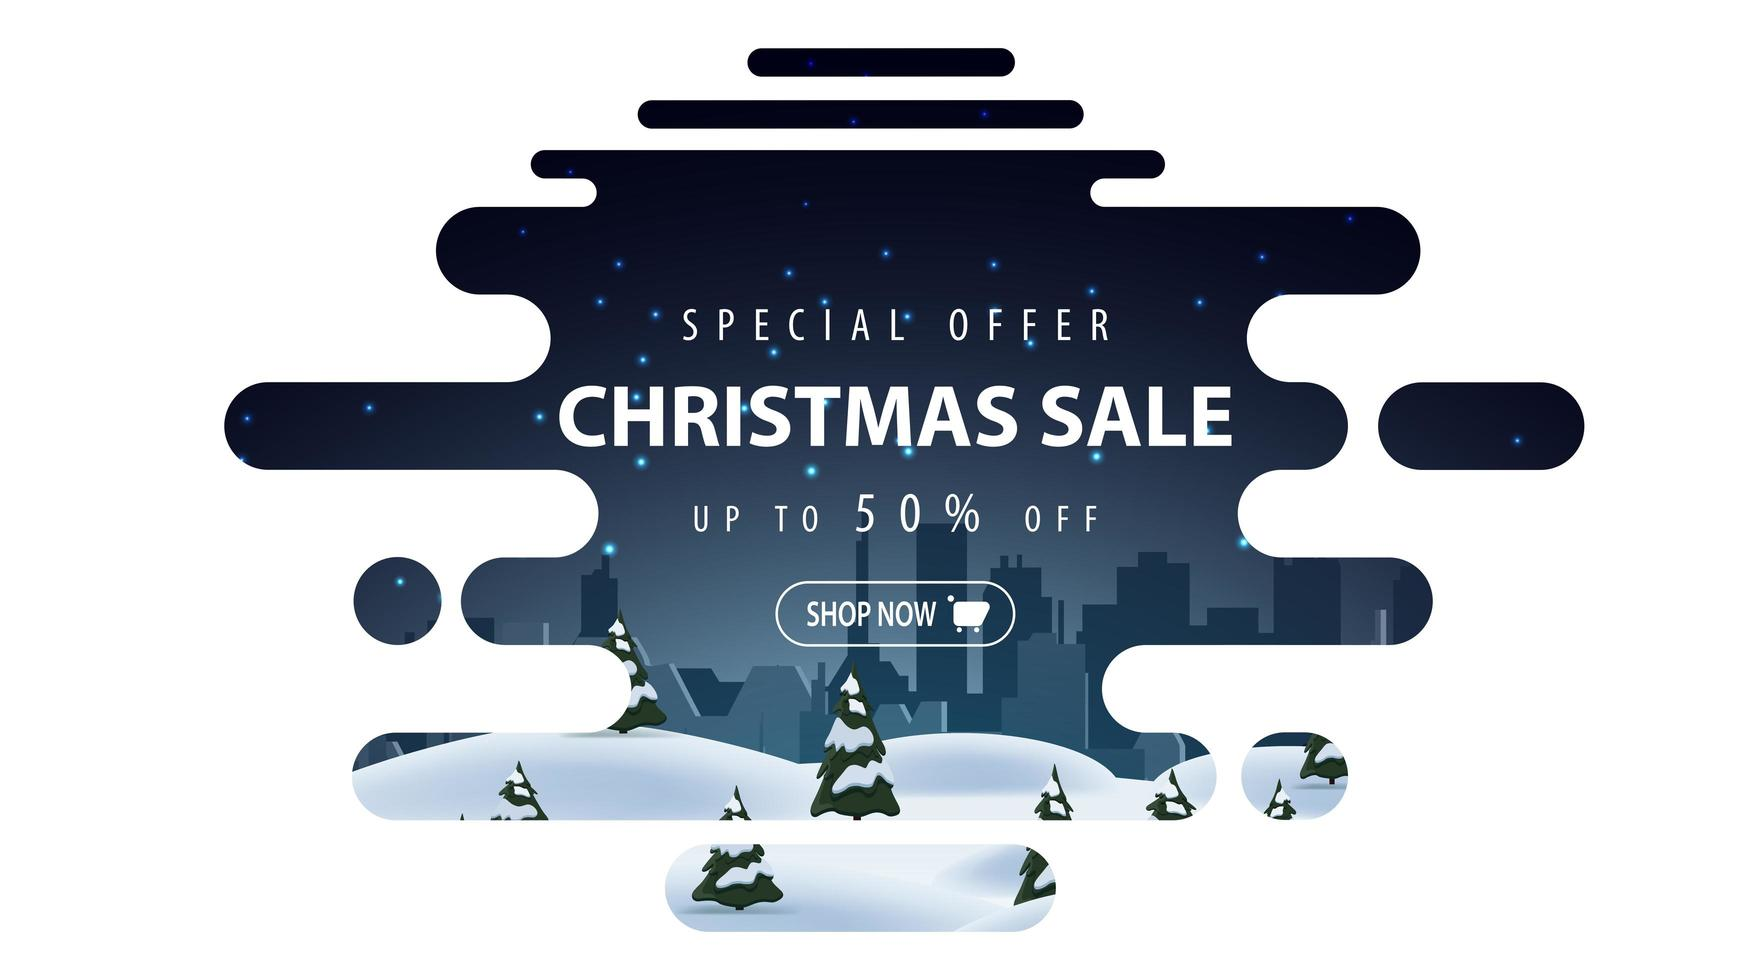 Special offer, Christmas sale, up to 50 off, beautiful white and blue discount banner in lava lamp style with smooth lines and winter landscape vector